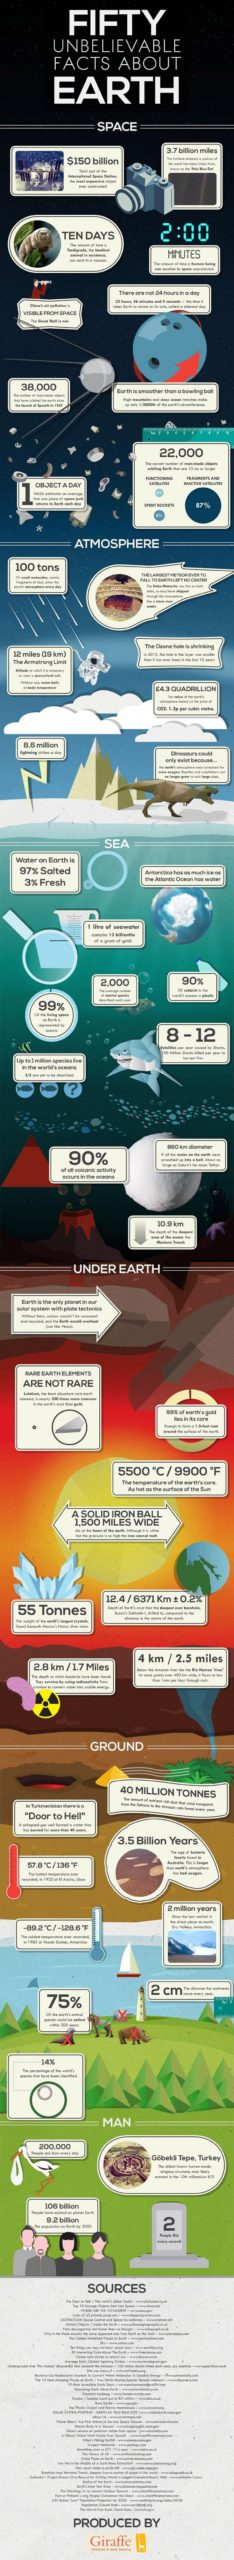 50_unbelievable_facts_about_earth